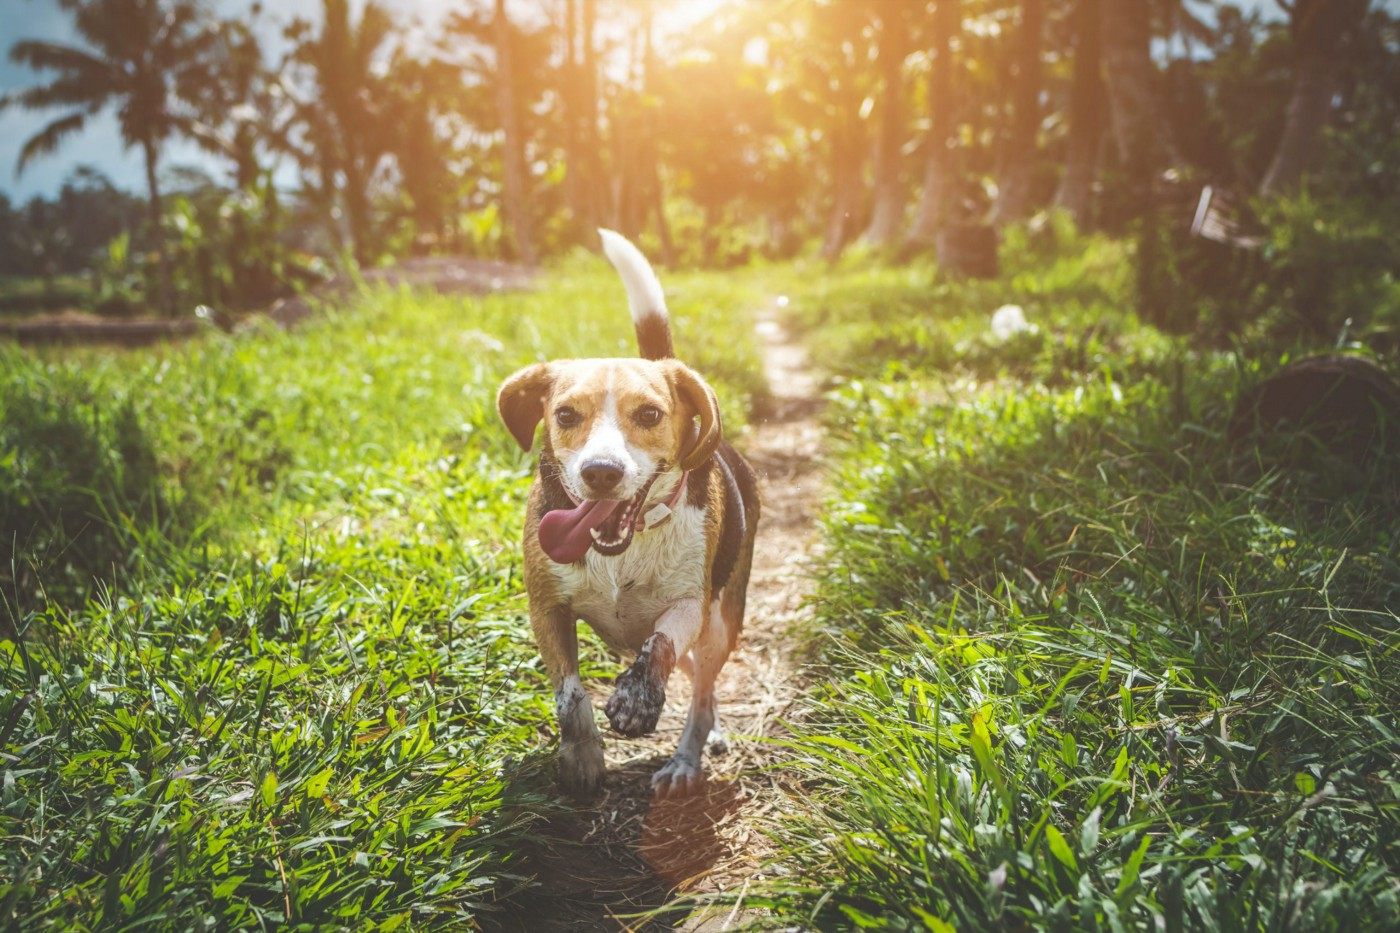 Why Dogs Wag Their Tails